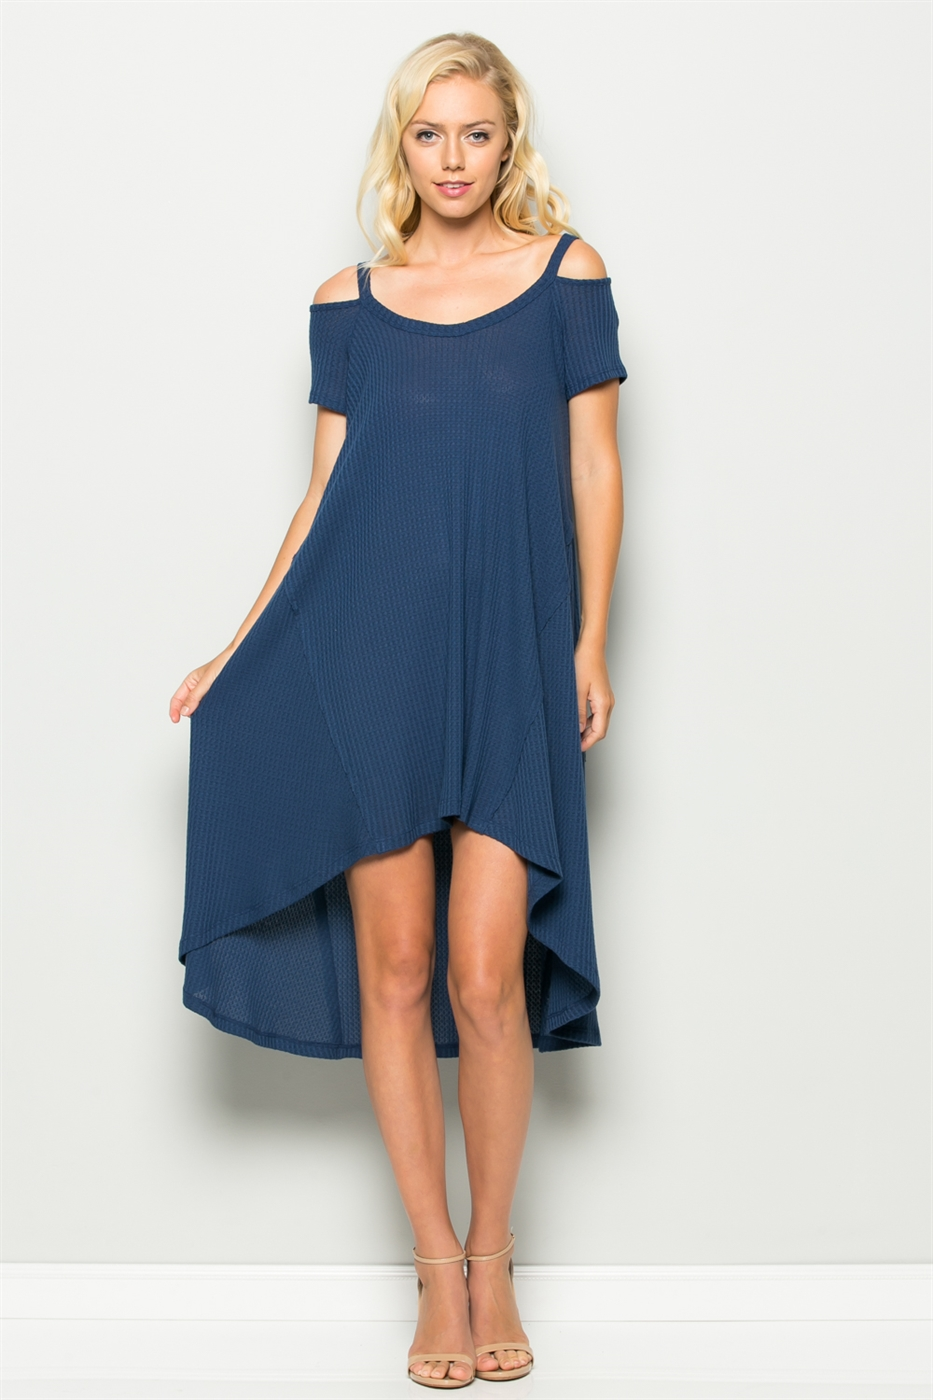 WAFFLE HI-LOW HEM DRESS - orangeshine.com